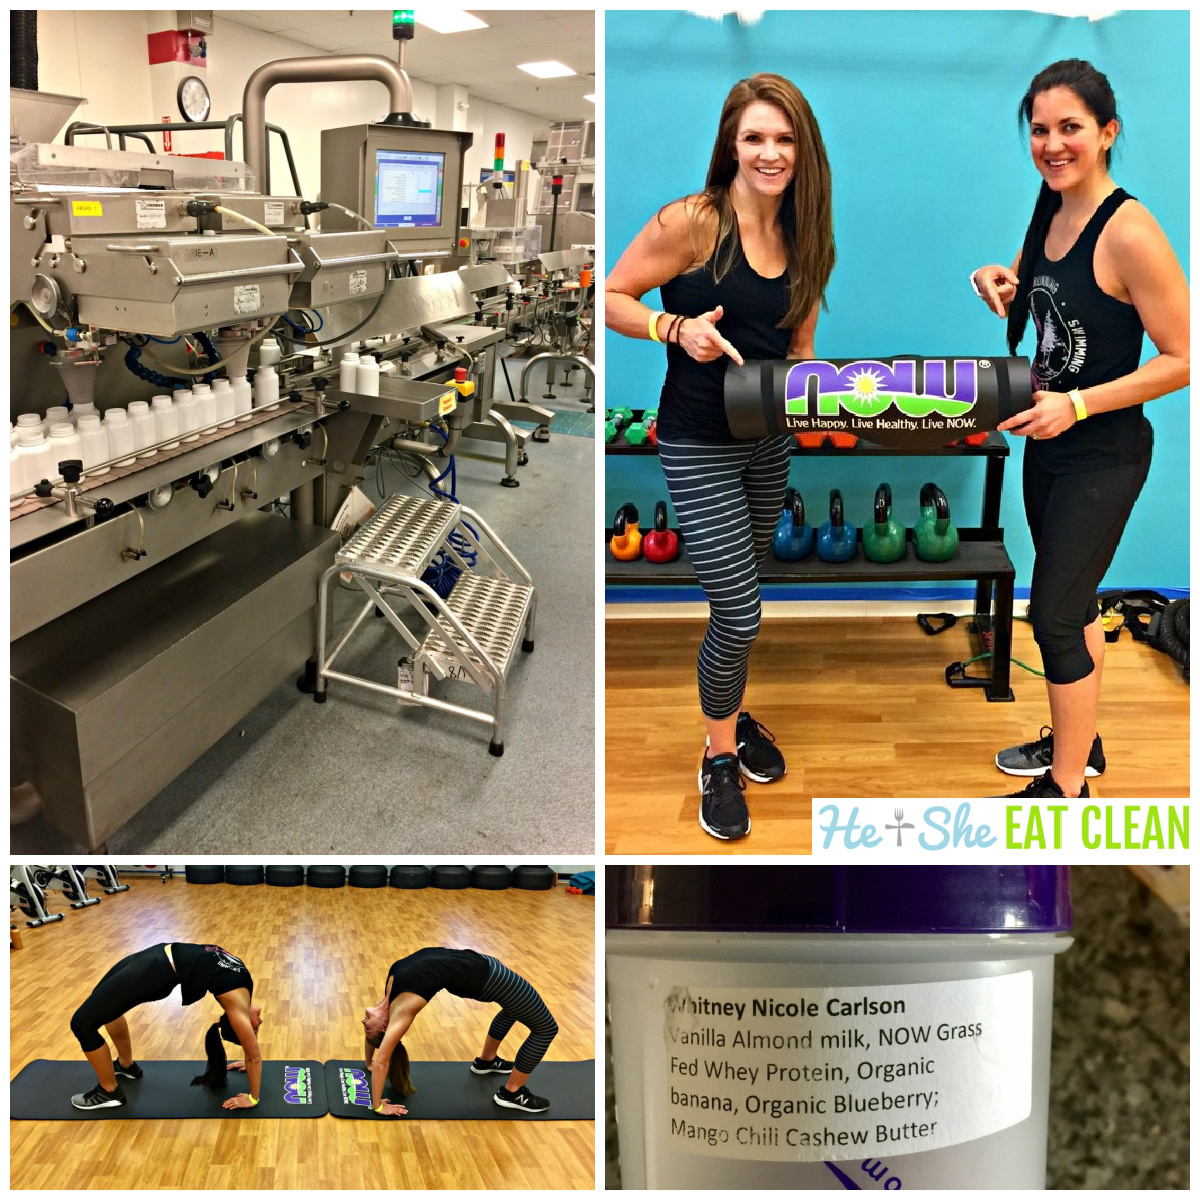 4 photo collage of inside a warehouse, two females holding a yoga mat, two females doing backbends, and a blender bottle